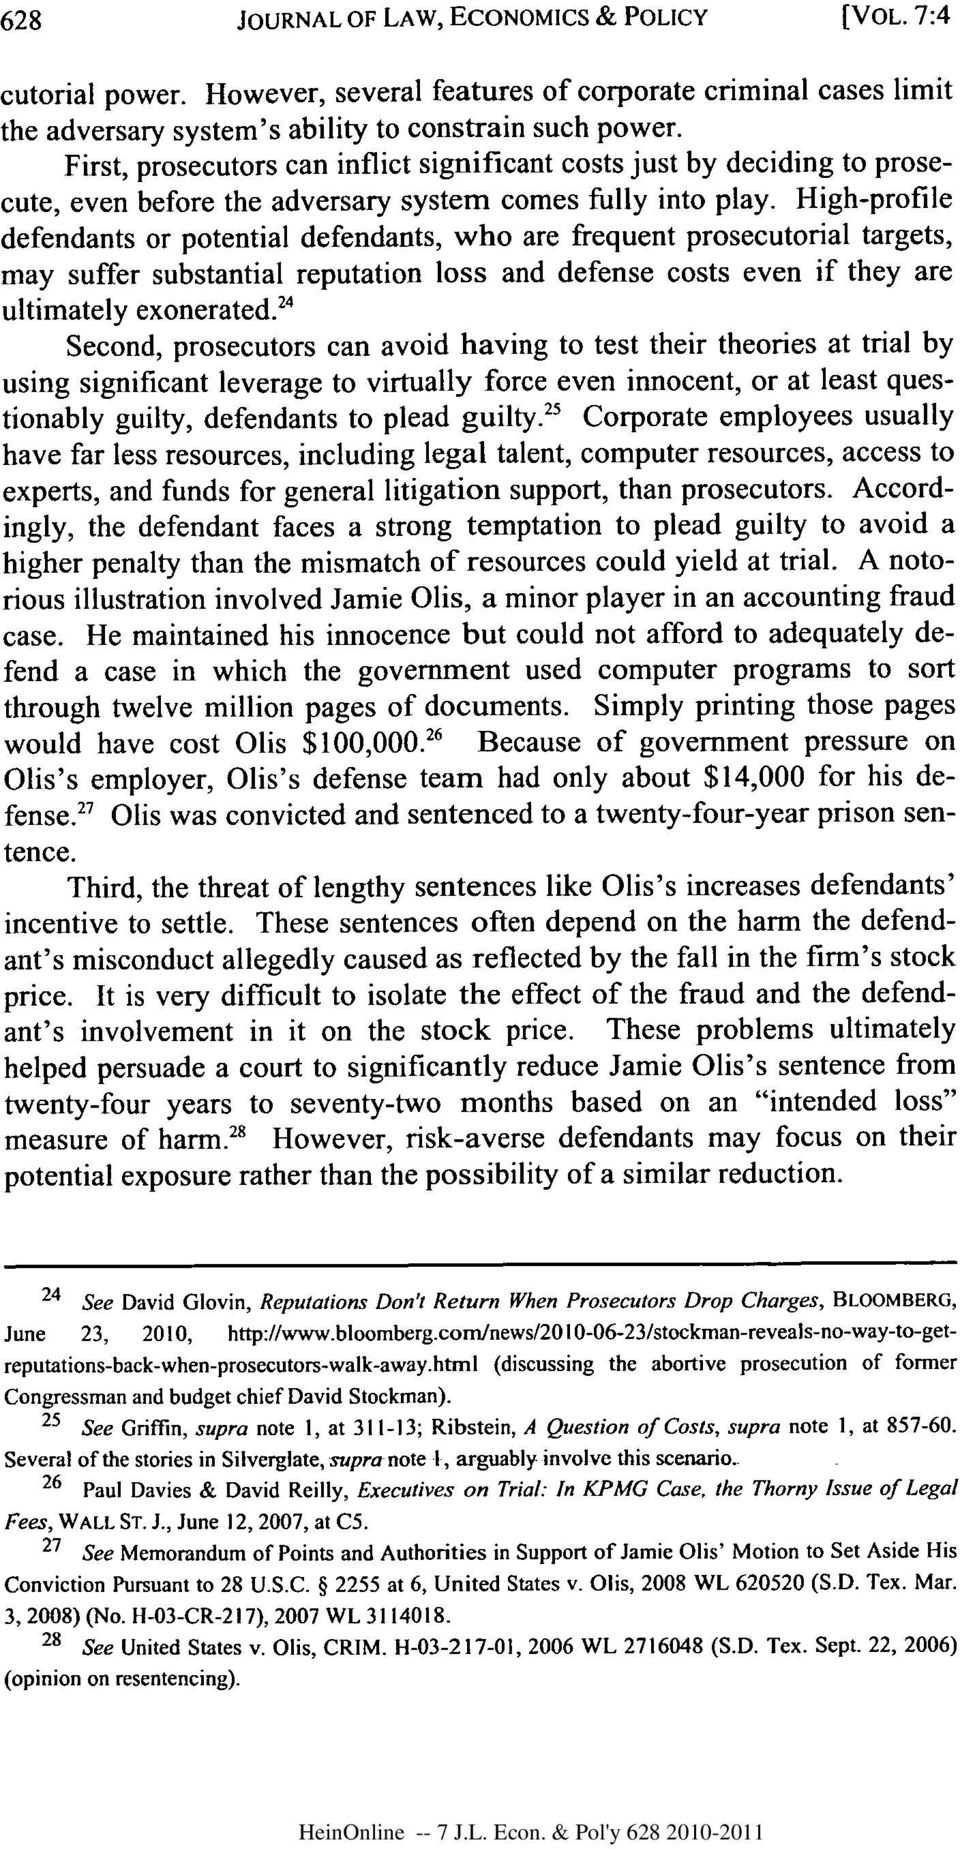 High-profile defendants or potential defendants, who are frequent prosecutorial targets, may suffer substantial reputation loss and defense costs even if they are ultimately exonerated.